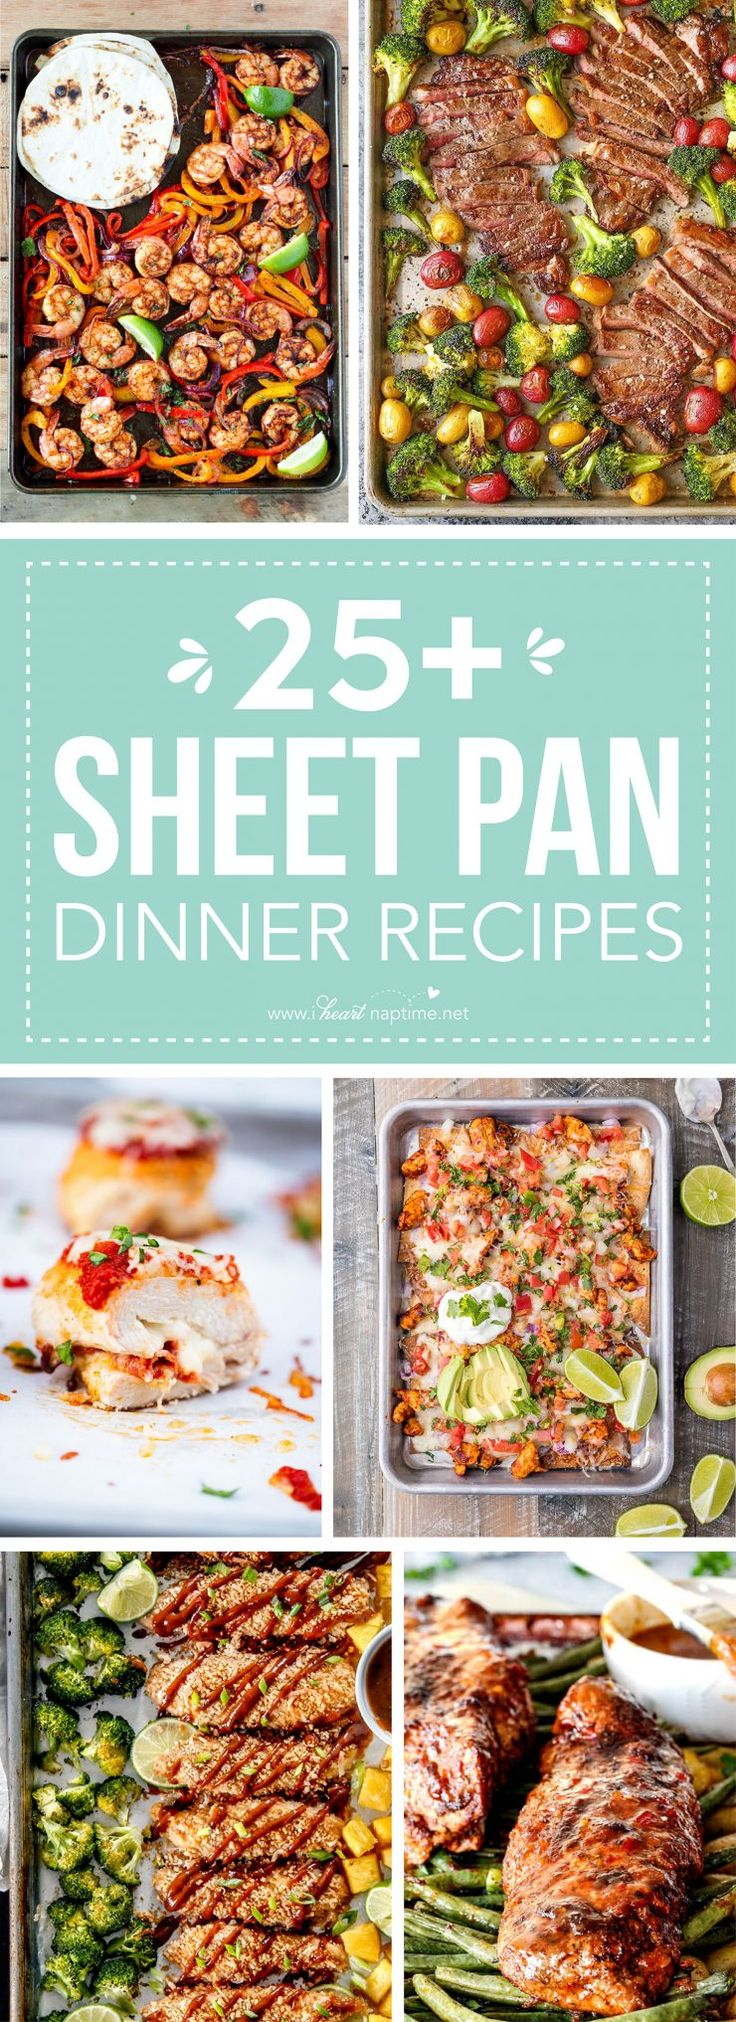 109 best Dinner images on Pinterest | Drink, Savory snacks and Kitchens